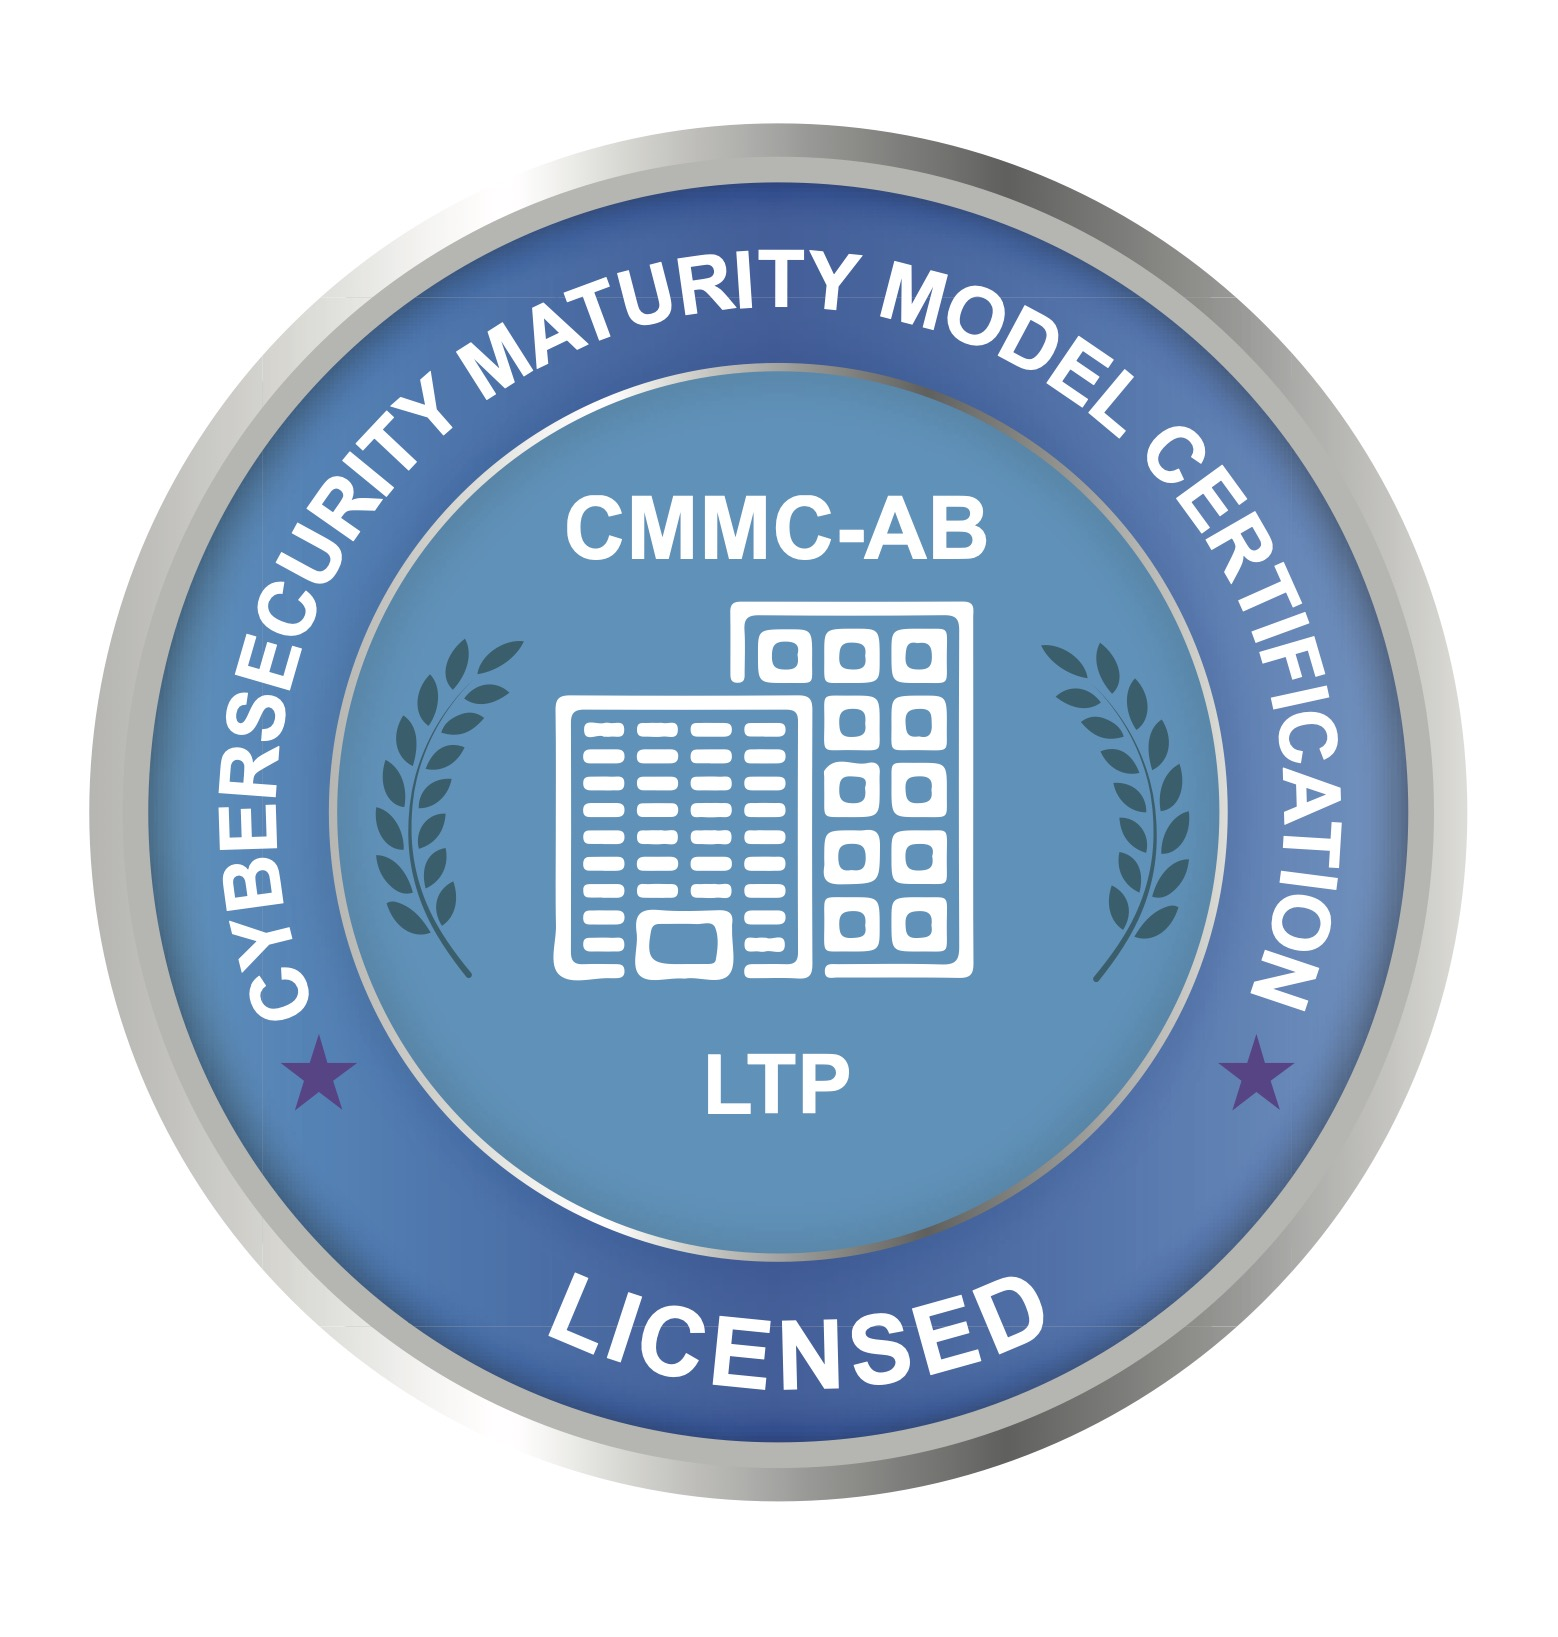 Cerberus Sentinel Is Licensed & Accredited To Help With CMMC